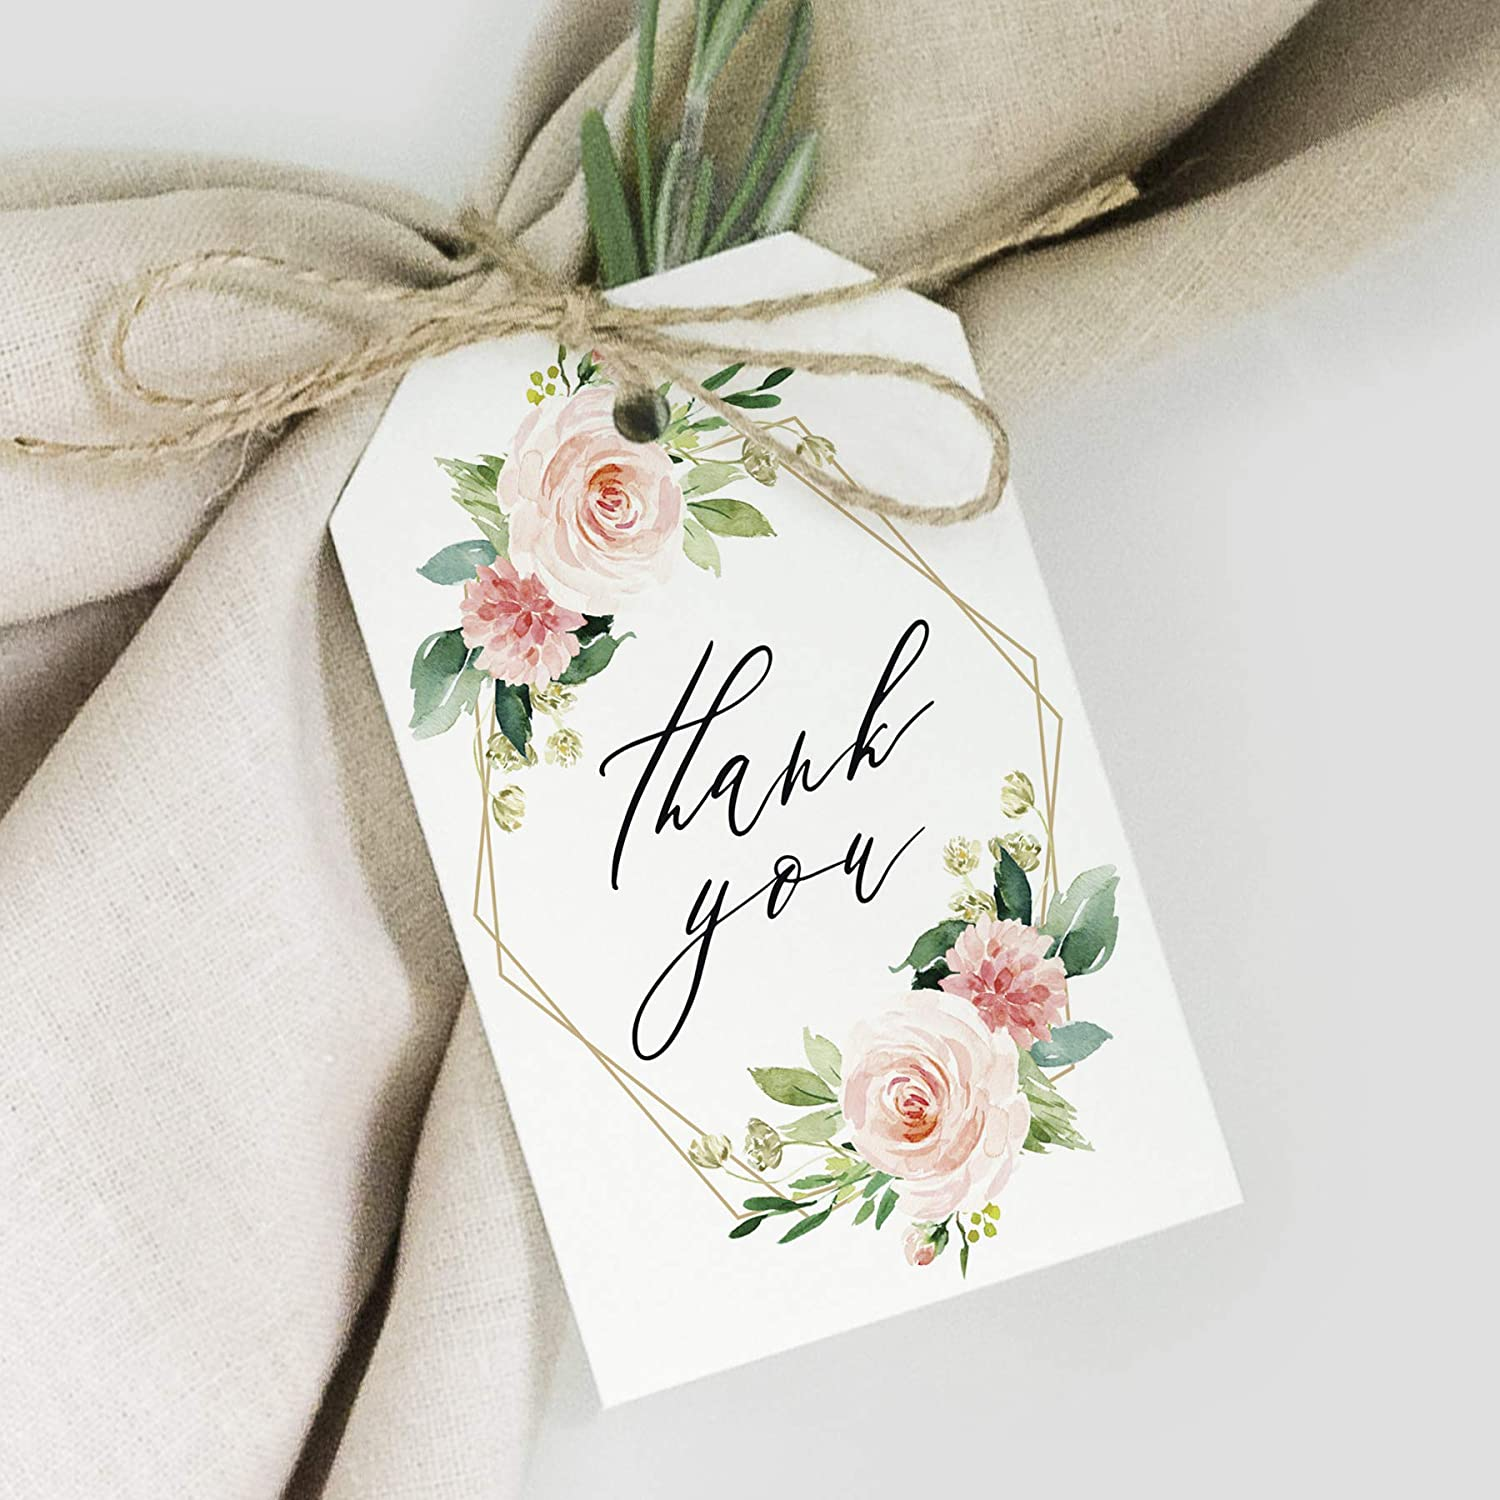 Bliss Collections Geometric Floral Favor Thank You Tags — Greenery, Pink Blush Flower Design, Perfect for: Wedding Favors, Baby Shower, Bridal Shower, Birthday or Special Event — 50 Pack